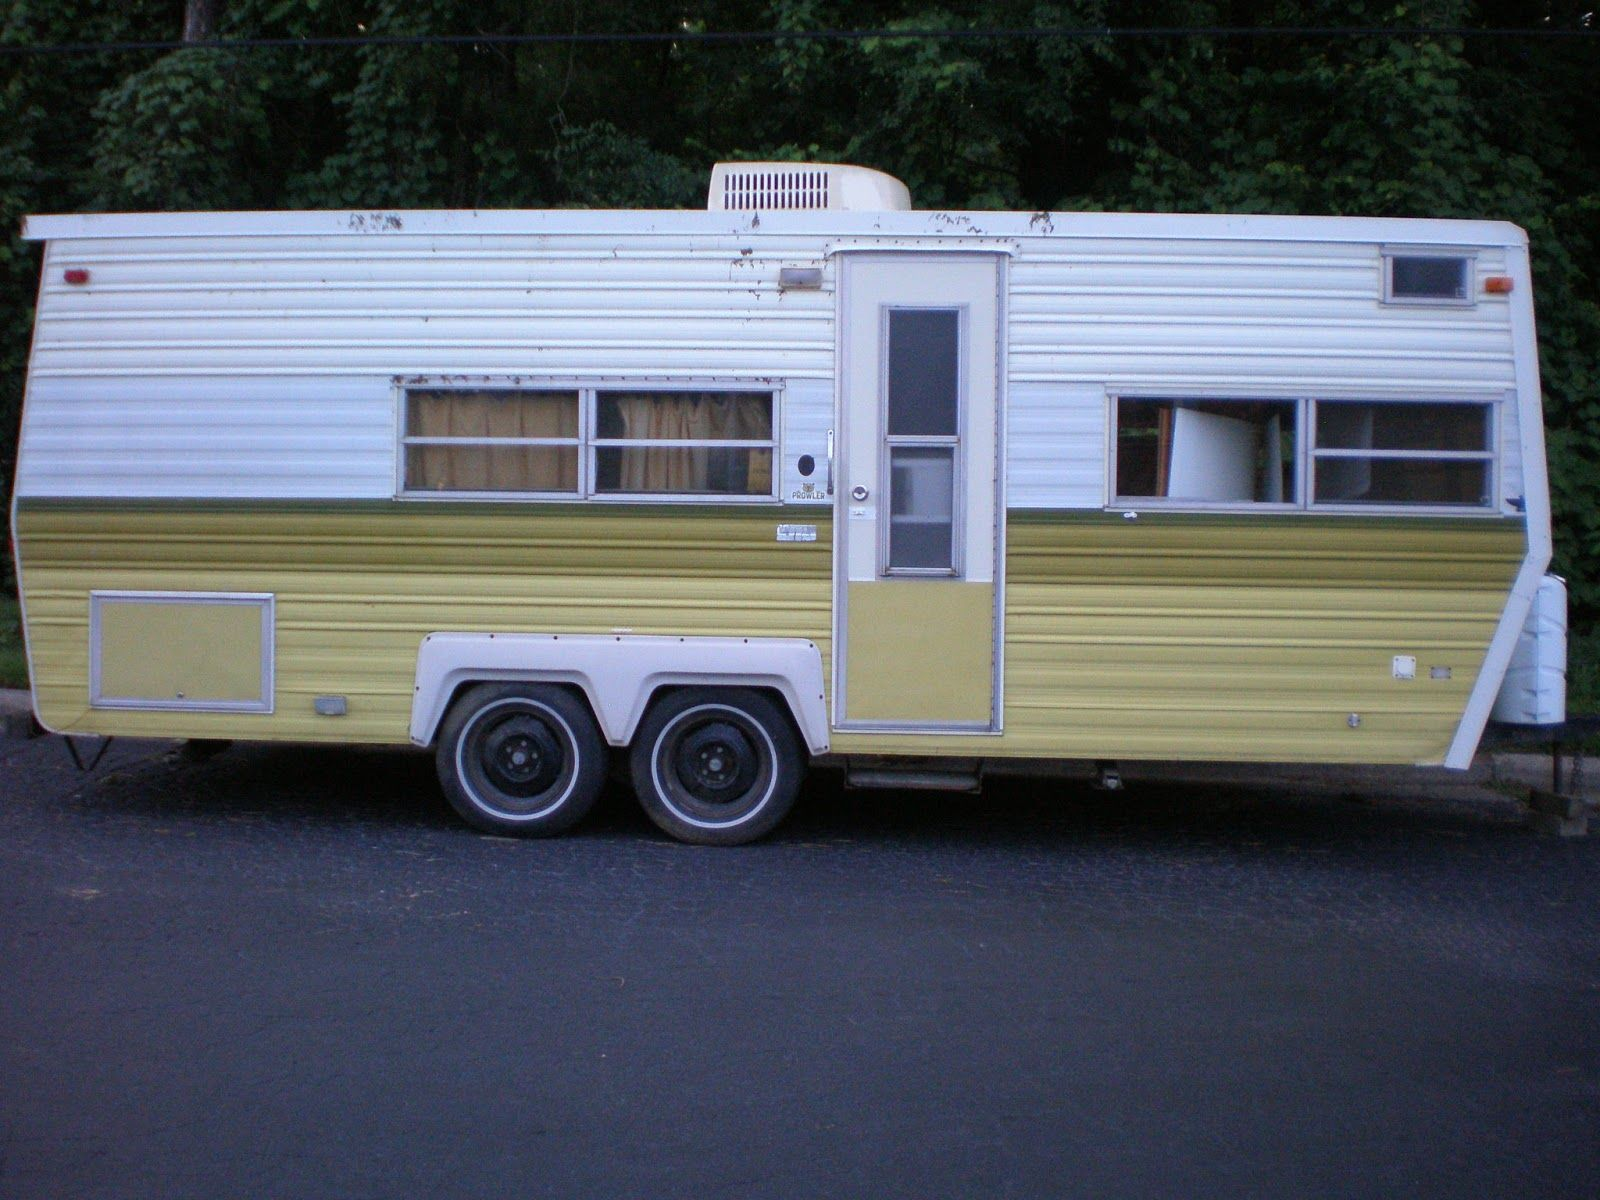 1977 Fleetwood Prowler Travel Trailer Wilderness Camper Wiring Diagram Bought A Hey I Want That Pinterest 1600x1200